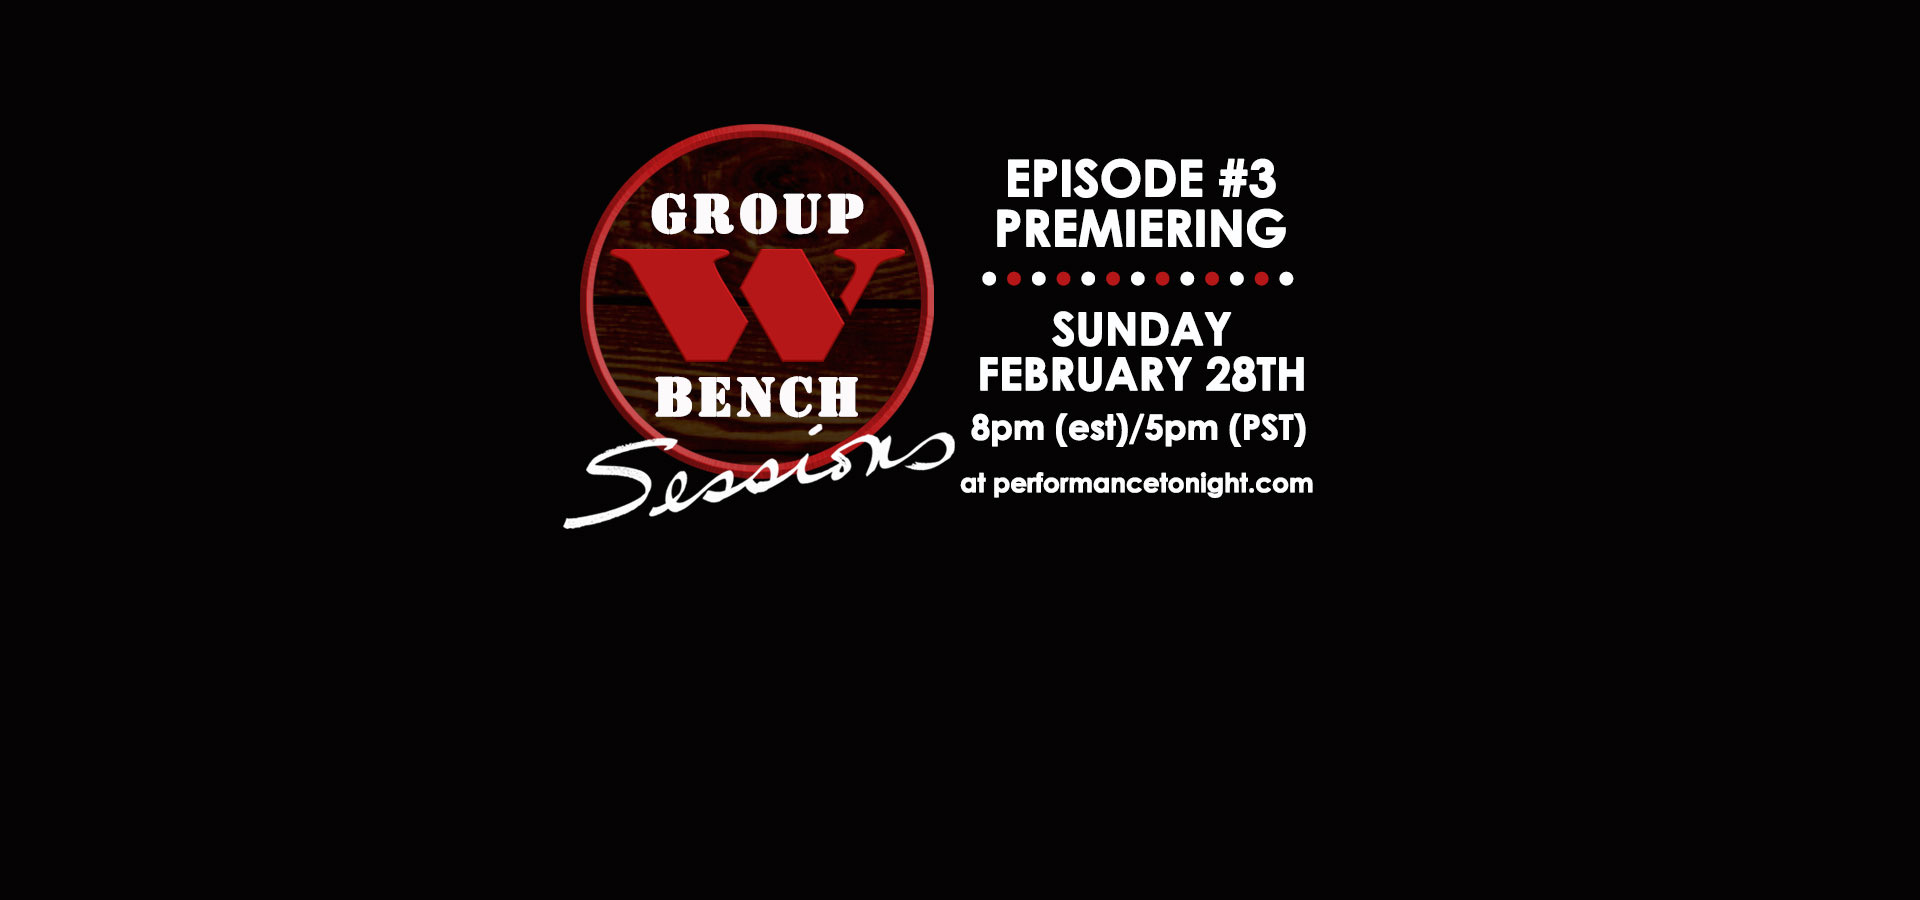 Arlo's Group W Sessions Episode #2 premieres January 3rd!